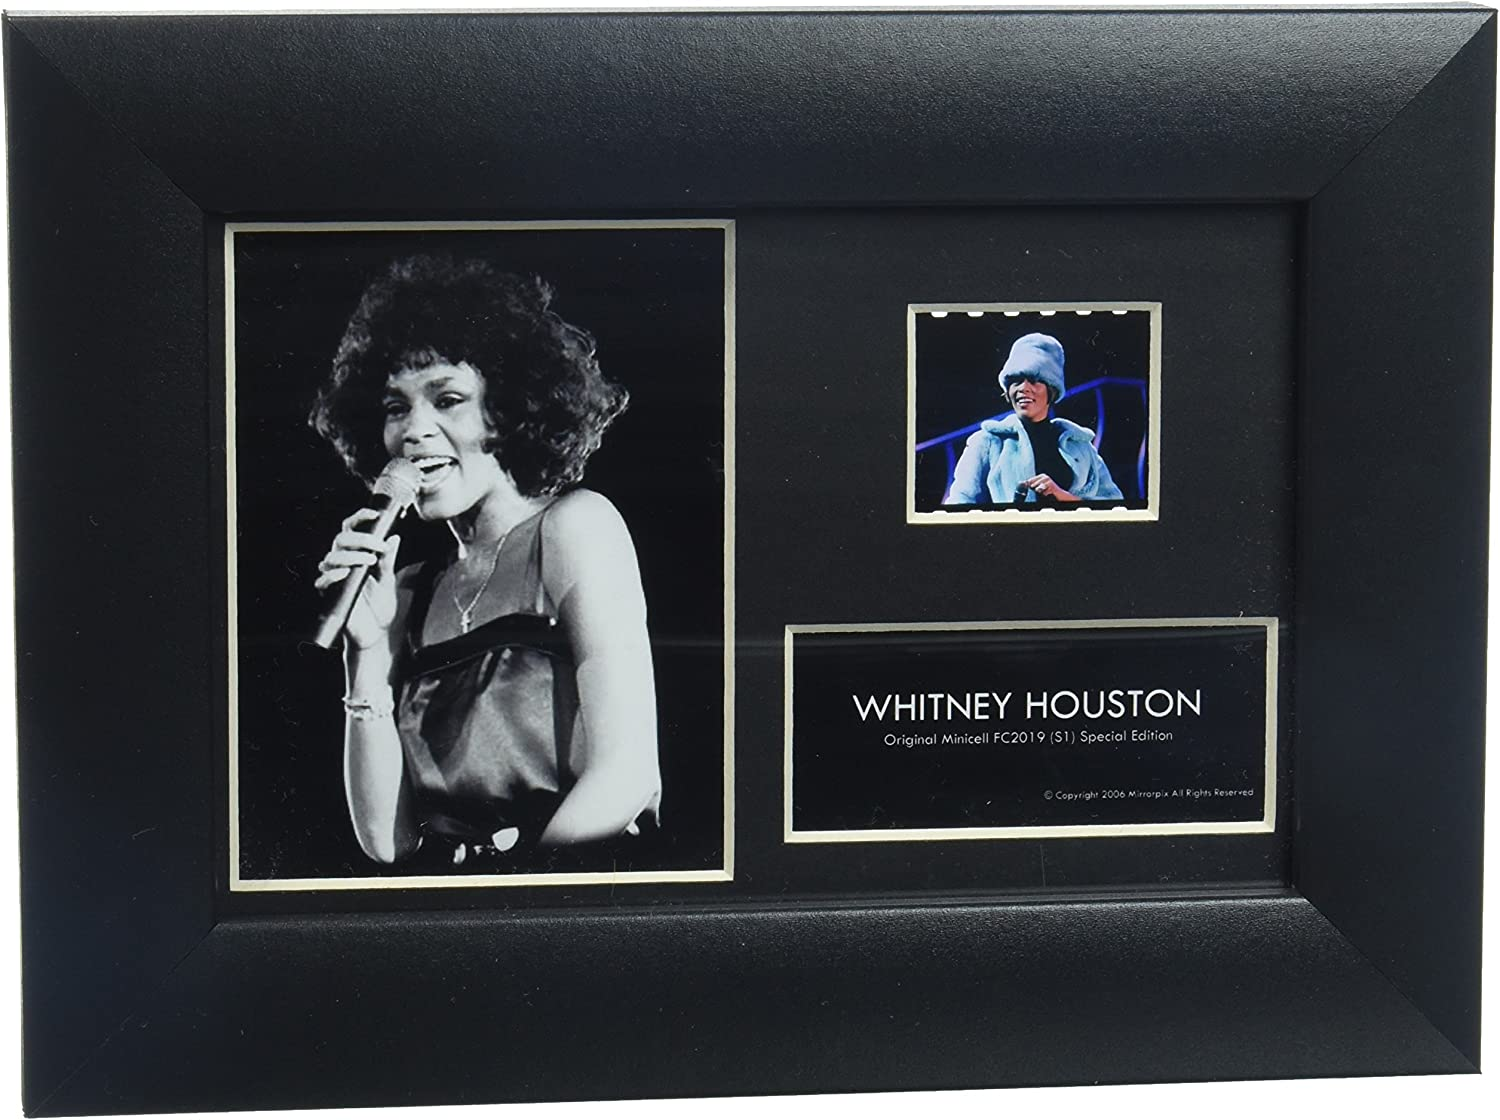 Whitney Houston S1 Minicell Film Cell Special Edition